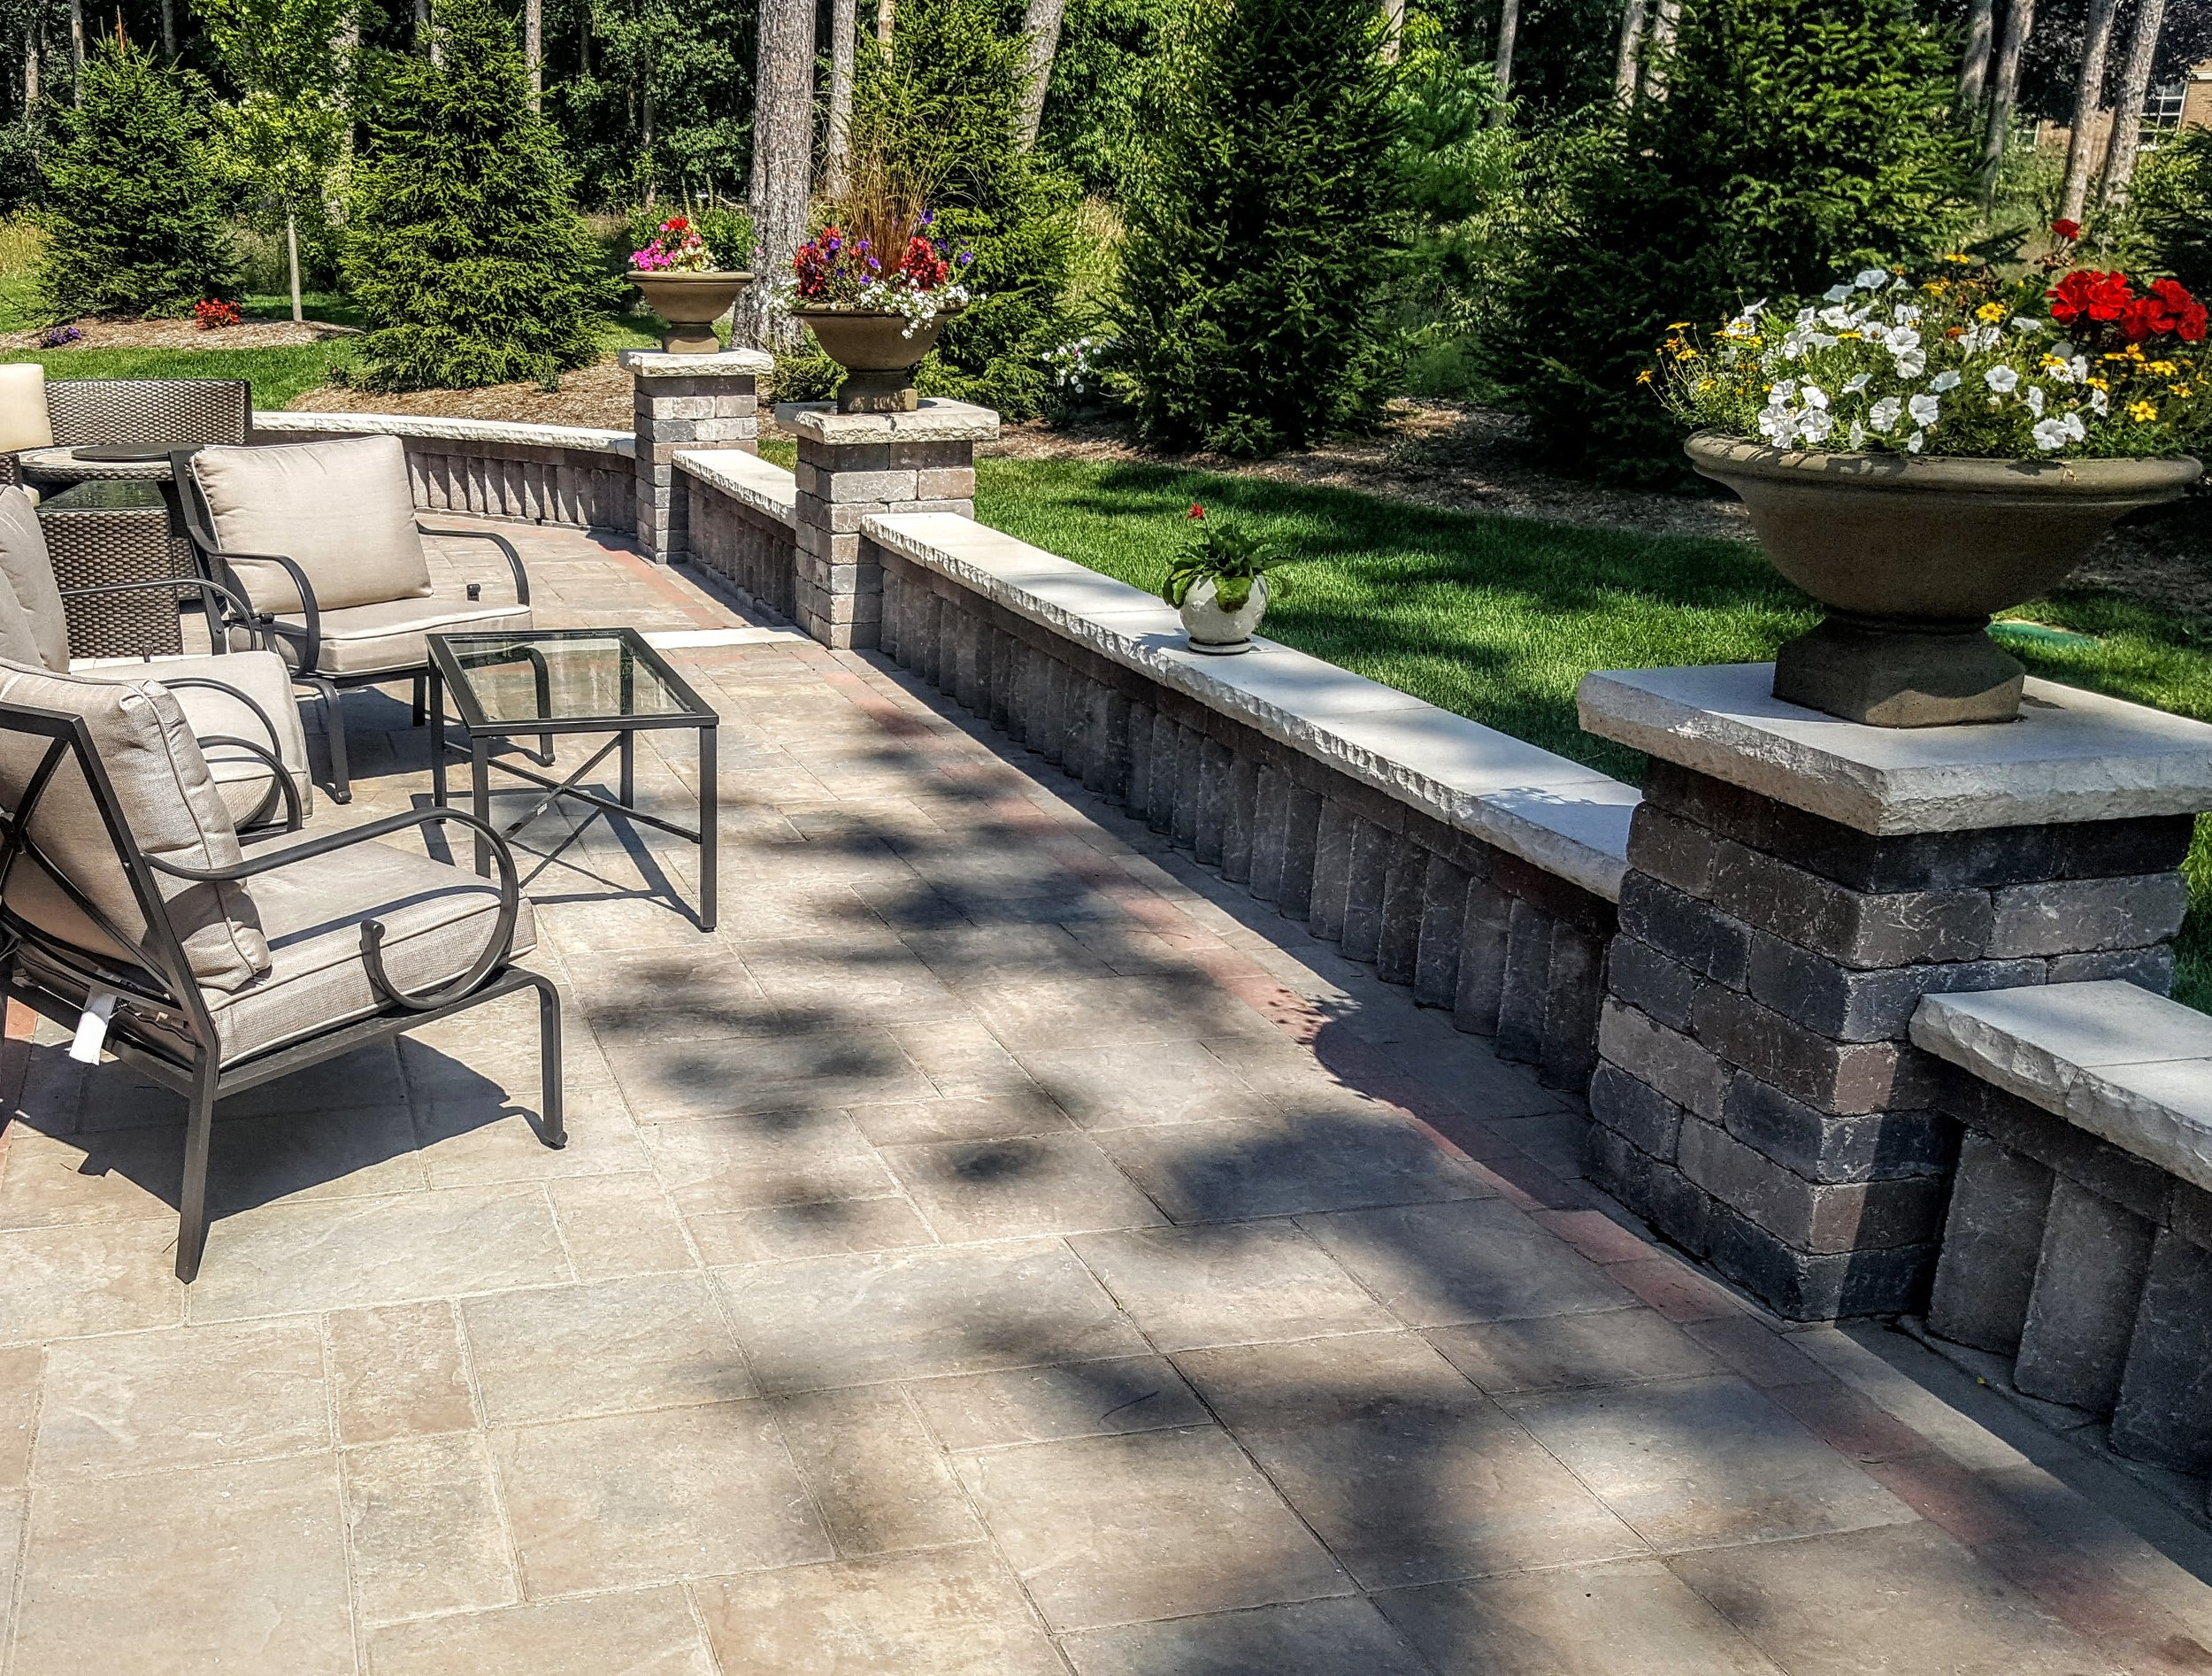 Custom Designs - Your experience with Cene's Landscape Services Inc. begins with a consultation, where we will learn about your expectations for your landscaping. Then we will create a custom design for your home or business that fits your needs and your budget. Once you approve the design we will use the finest materials from Unilock, Oaks, Fendt and natural stones to create beautiful walkways, driveways, patios, retaining walls and flower boxes. With the proper choice of shrubbery, trees and flowers we will create a landscape that will have an immediate impact and grow to be even better in the years to come.Visit our photo gallery for examples of some of our previous work.